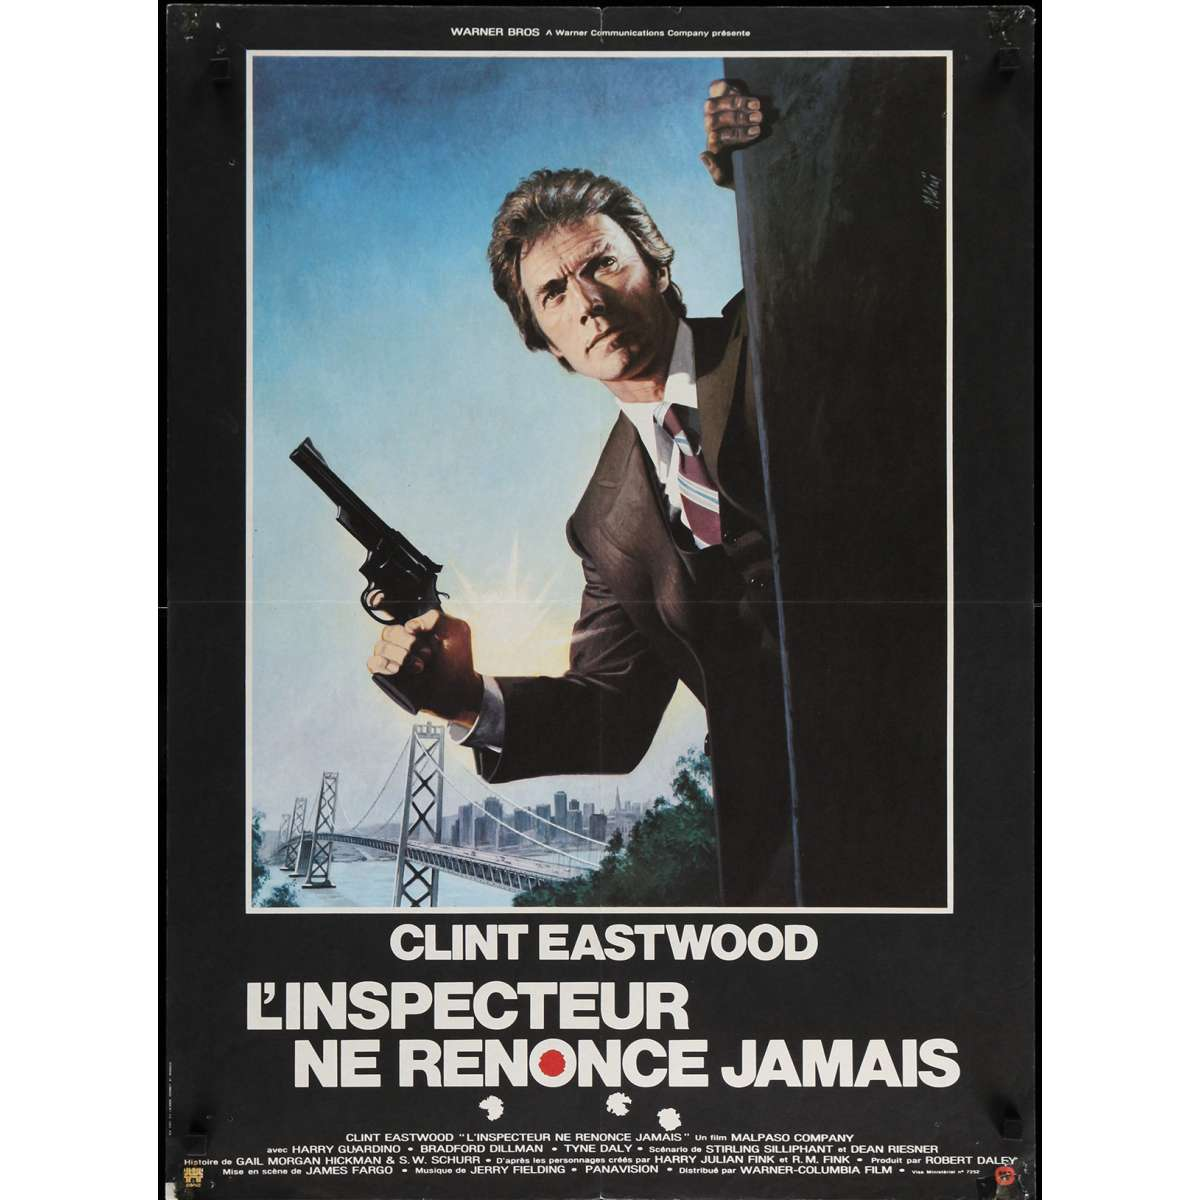 THE ENFORCER Movie Poster 23x32 In